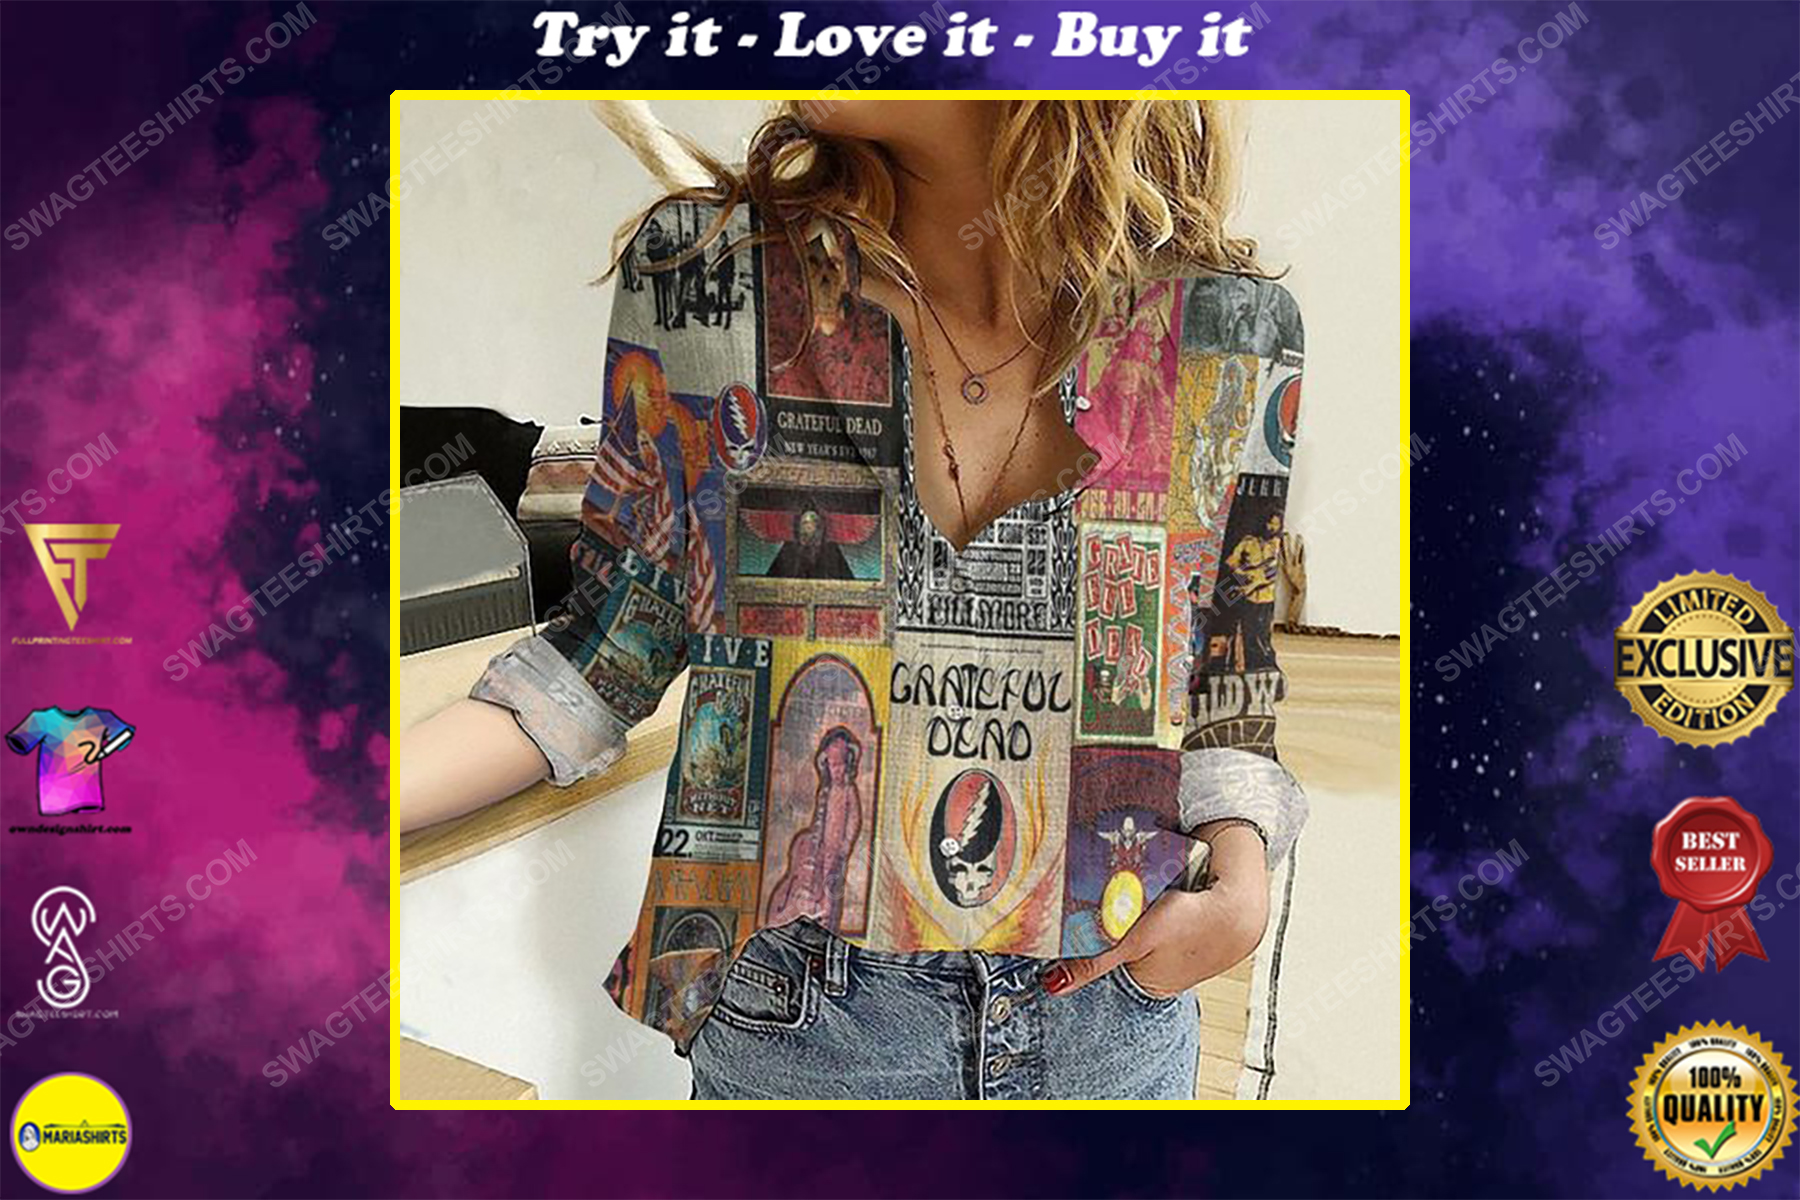 Grateful dead album covers fully printed poly cotton casual shirt